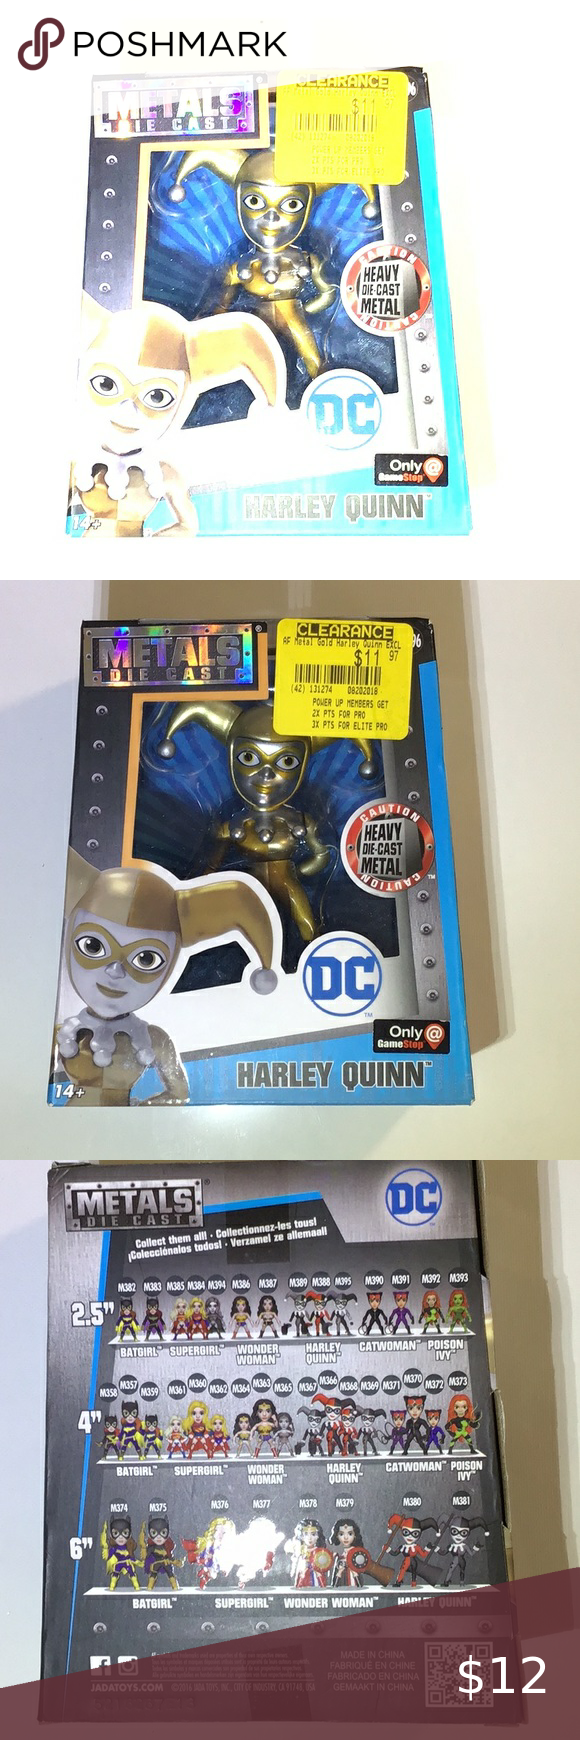 Harley Quinn Vinyl Action Figure In Box! New in Box! Purchased from Game Stop! Metal die-cast by Jadatoys.com Collect them all! DC Other